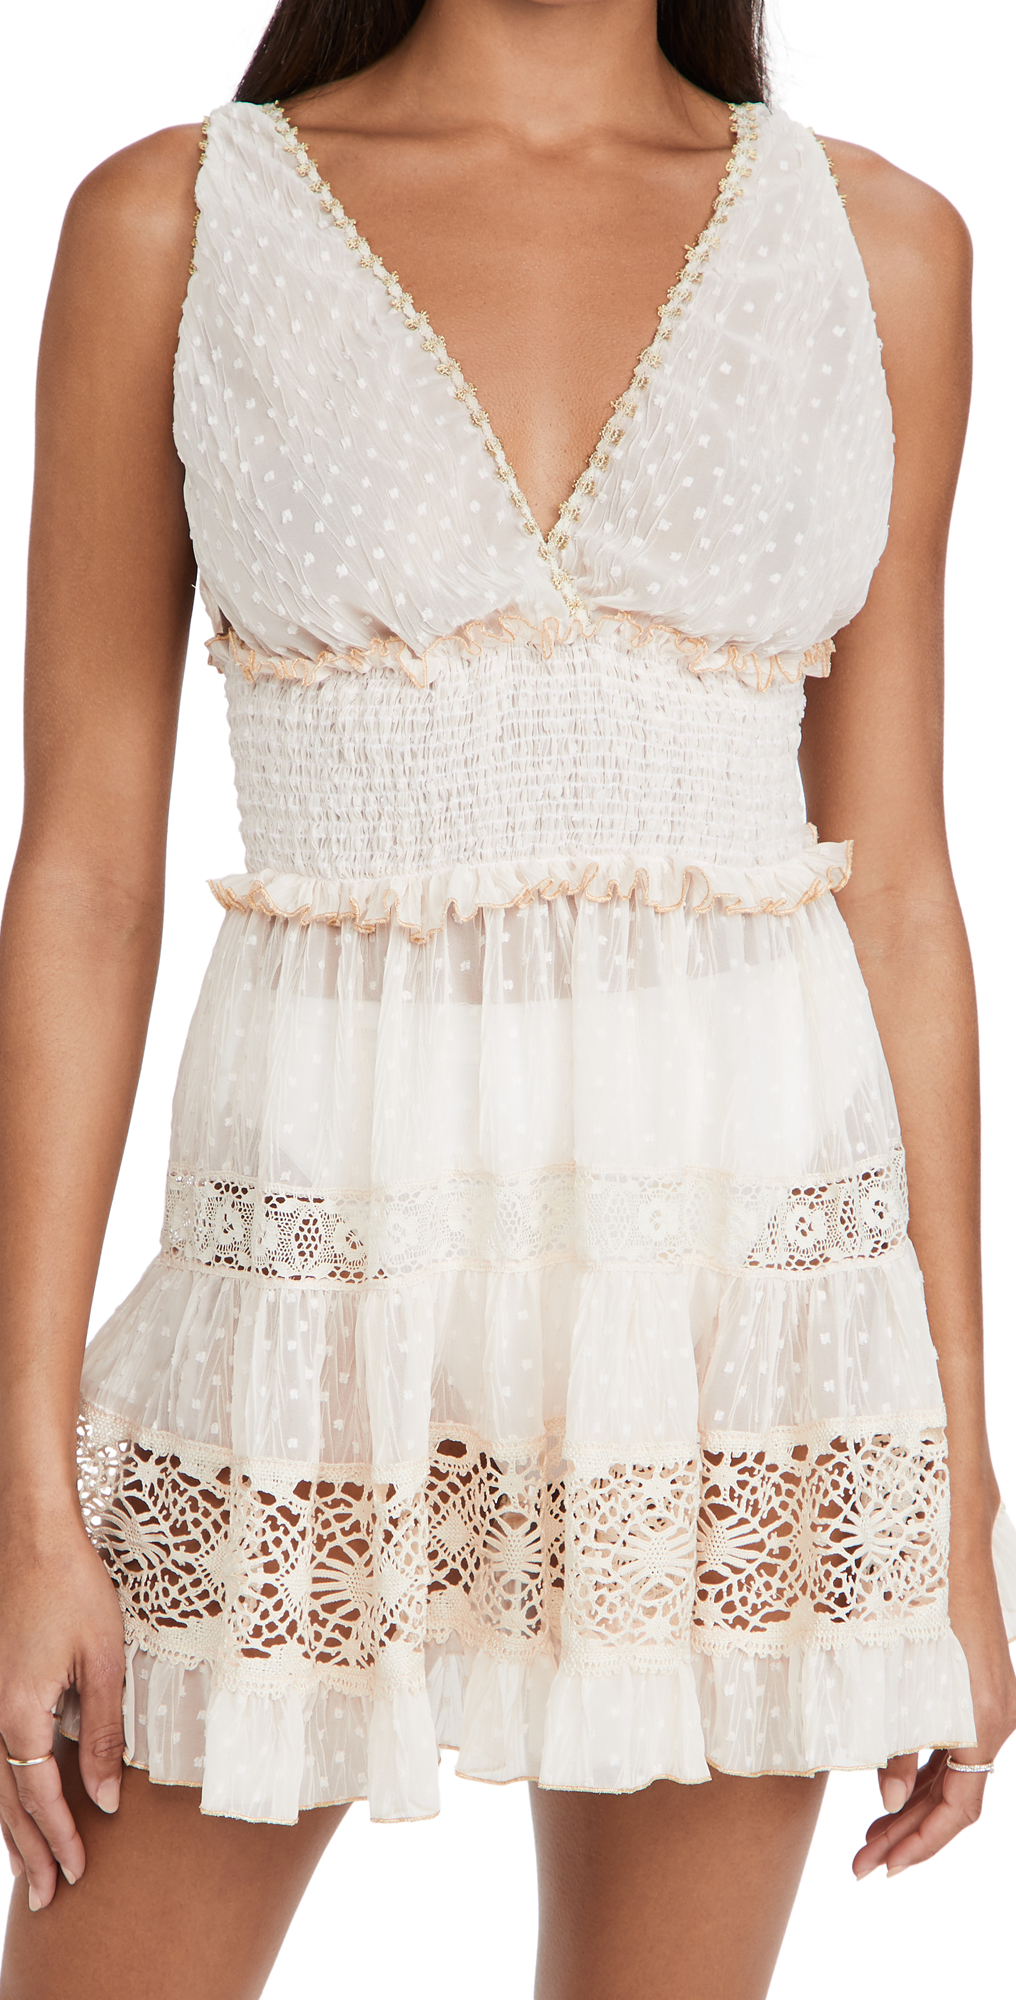 CHIO Short Dress with Lace